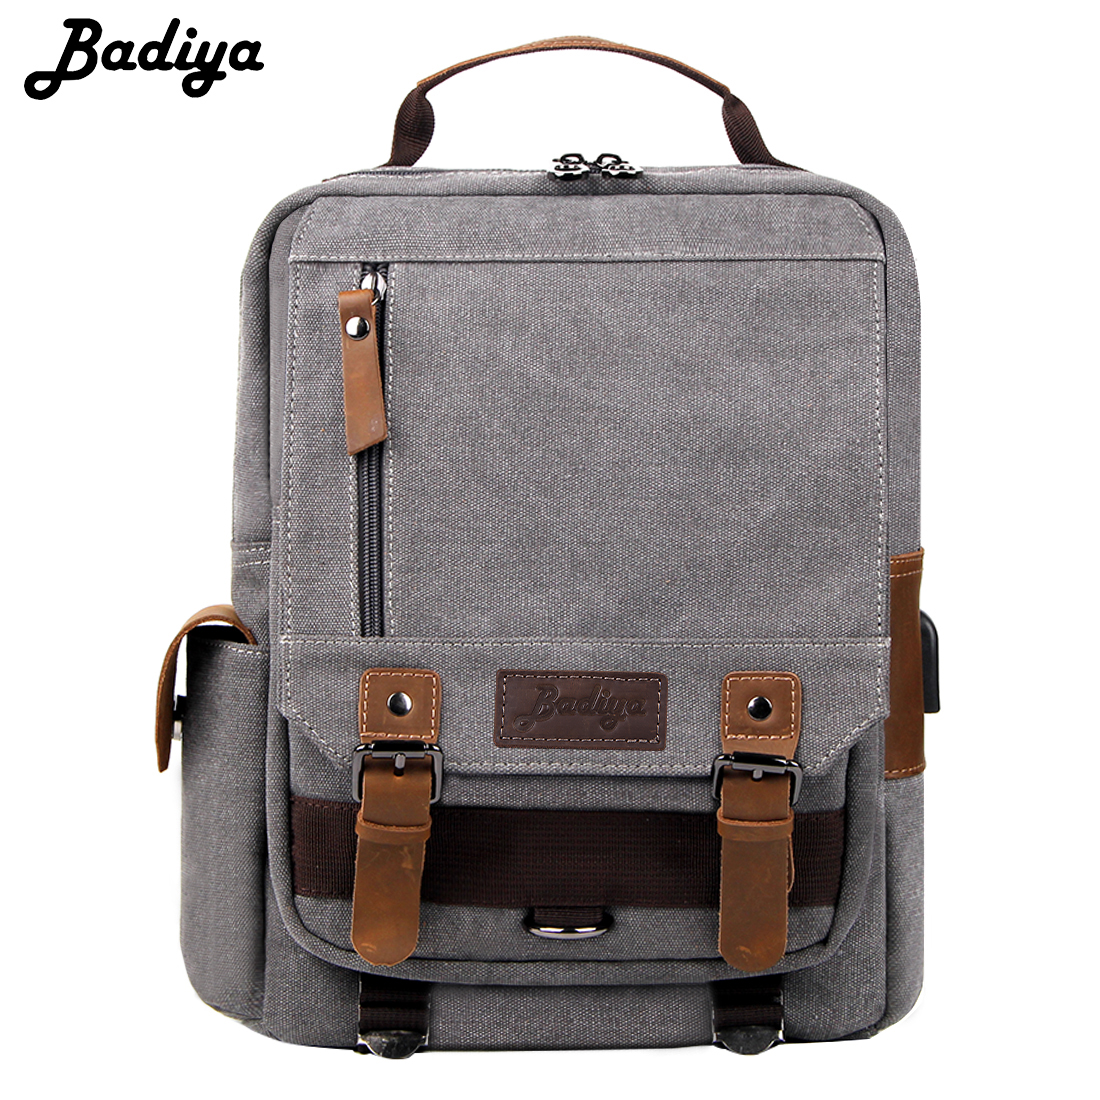 New Fashion Canvas Travel Backpack Men Solid Multi-function Laptop Backpack Male High Quality USB Charging Travel BagNew Fashion Canvas Travel Backpack Men Solid Multi-function Laptop Backpack Male High Quality USB Charging Travel Bag